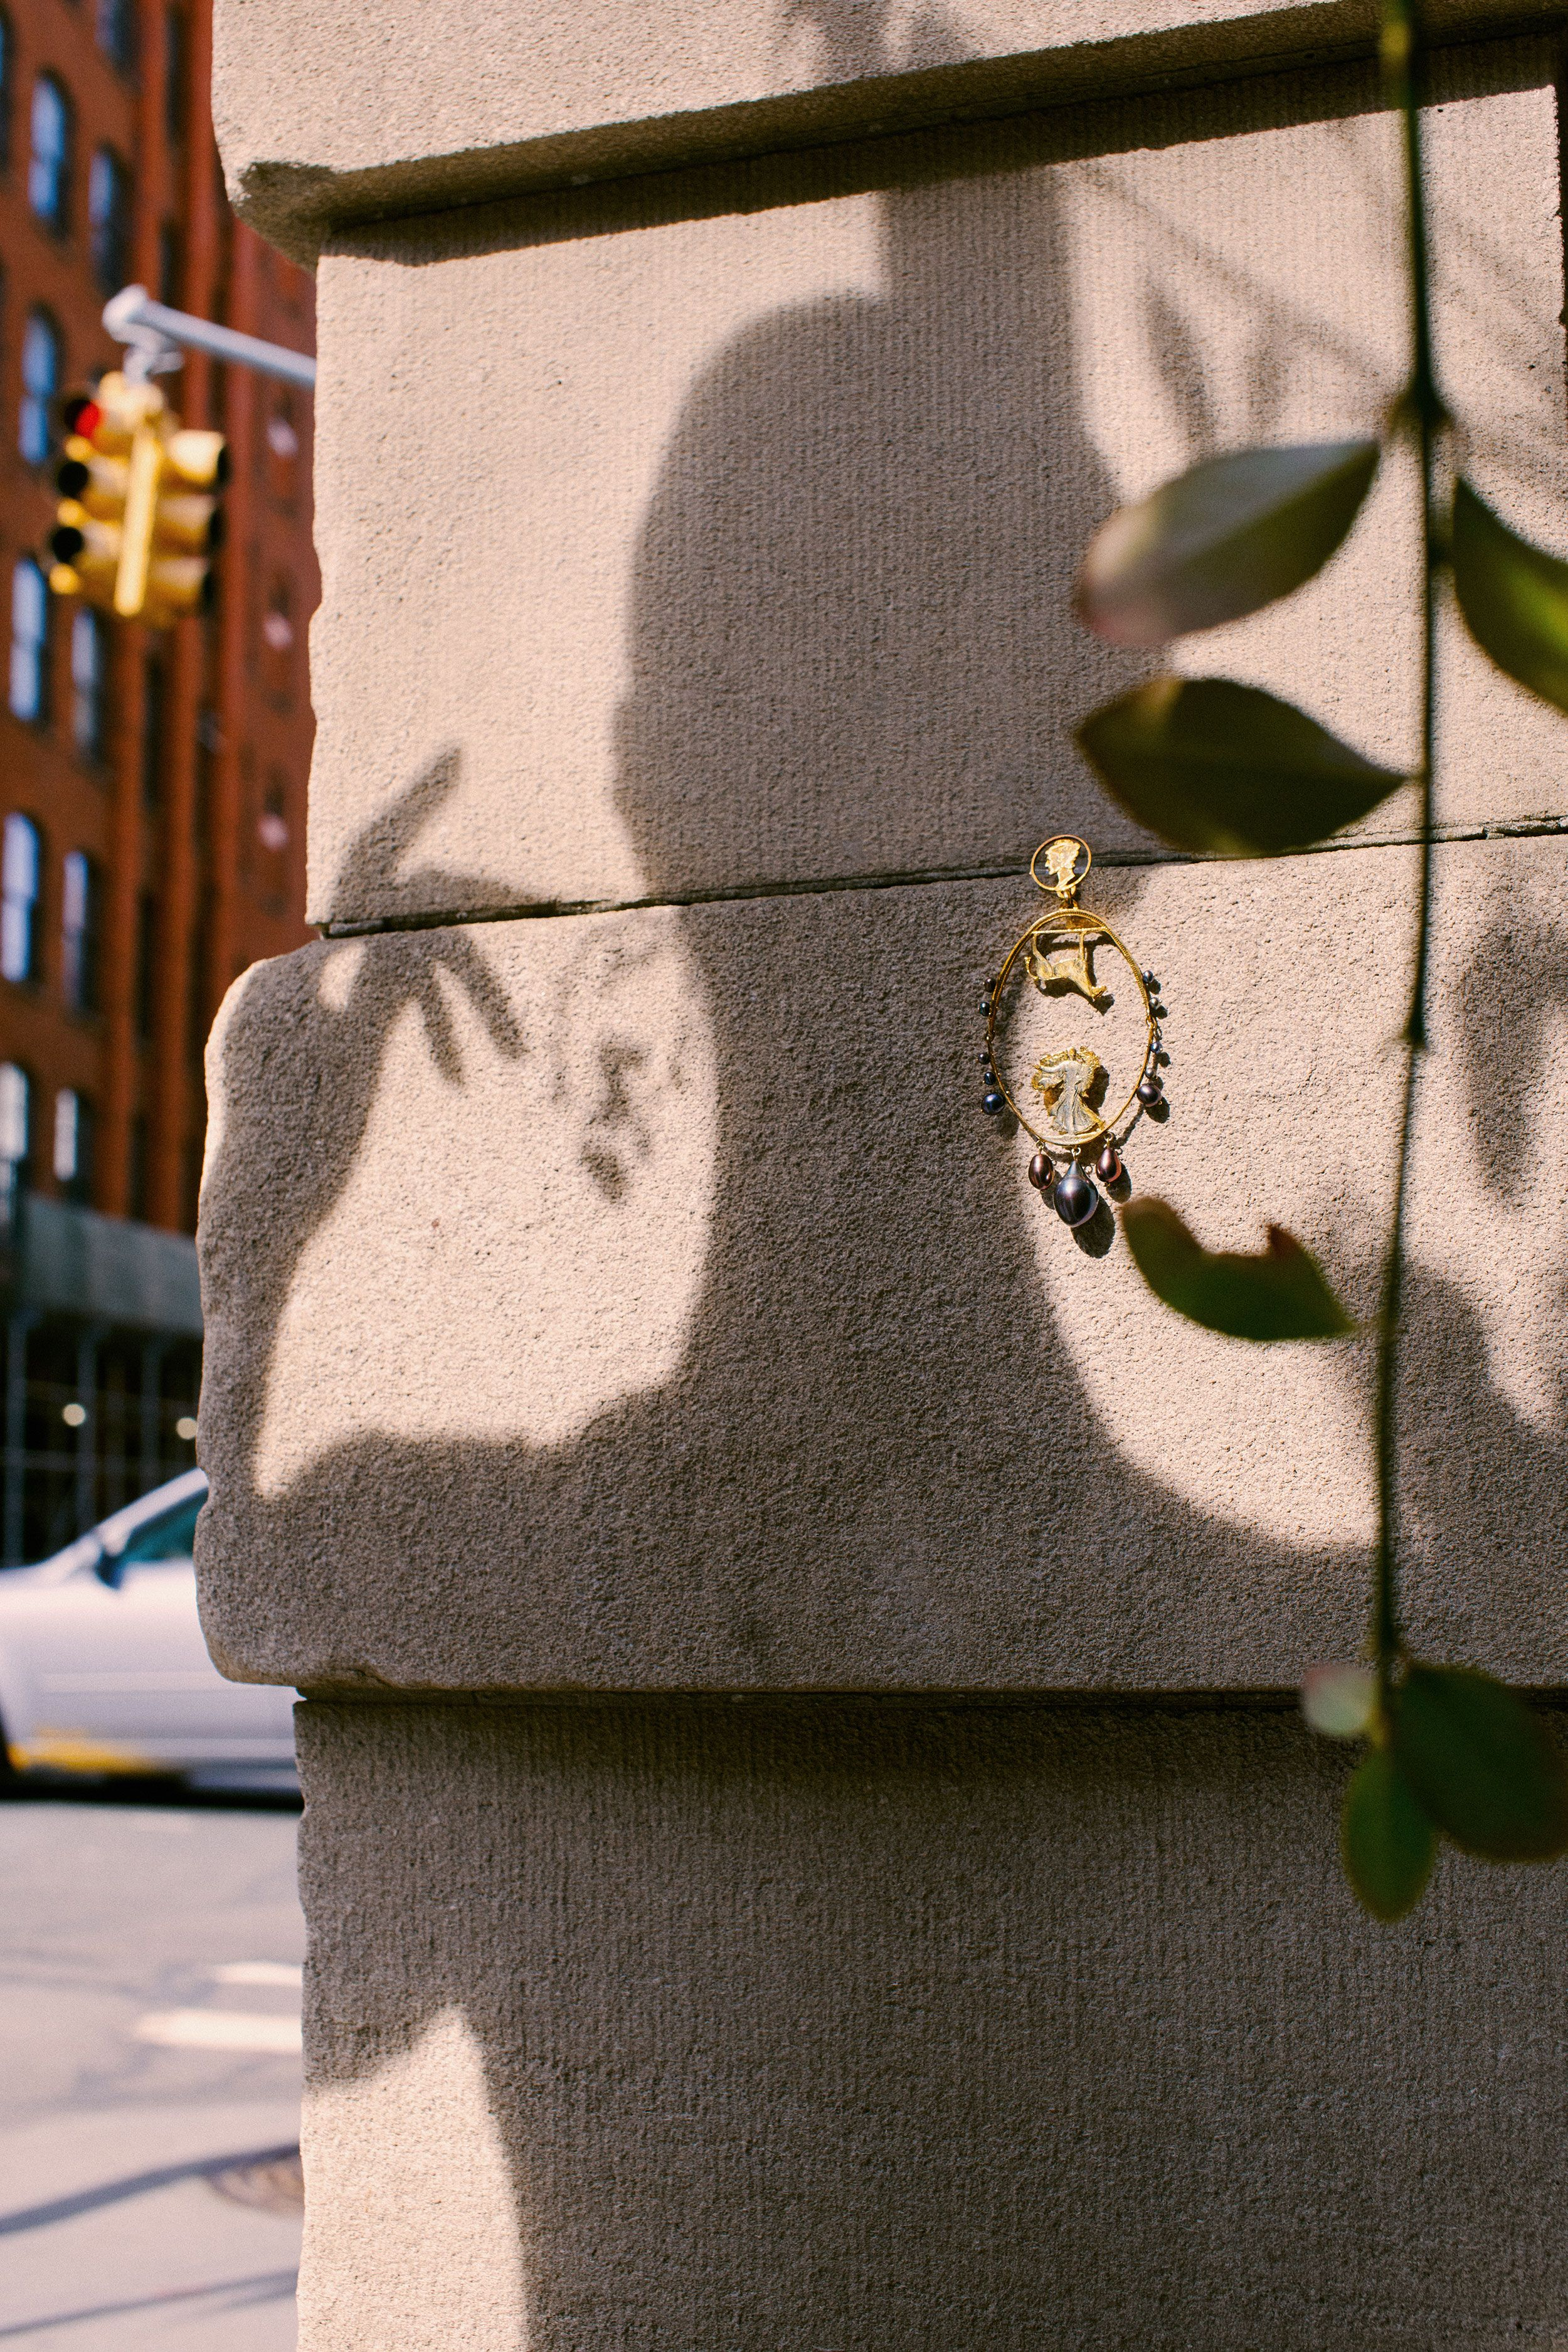 Statement Earrings That Look Antique